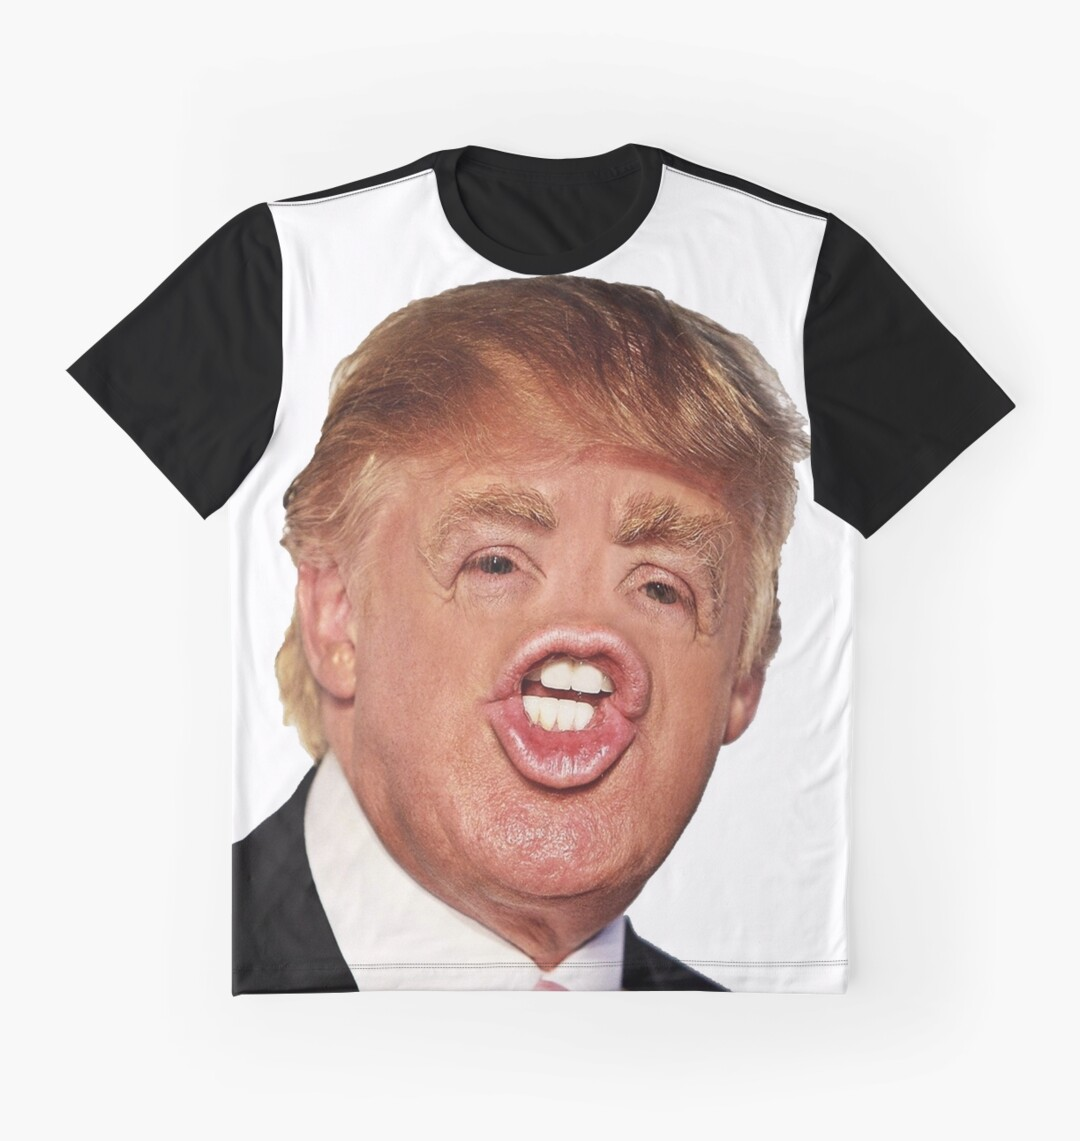 """""""Funny Donald Trump Meme"""" Graphic T-Shirts by KiyomiShop ..."""